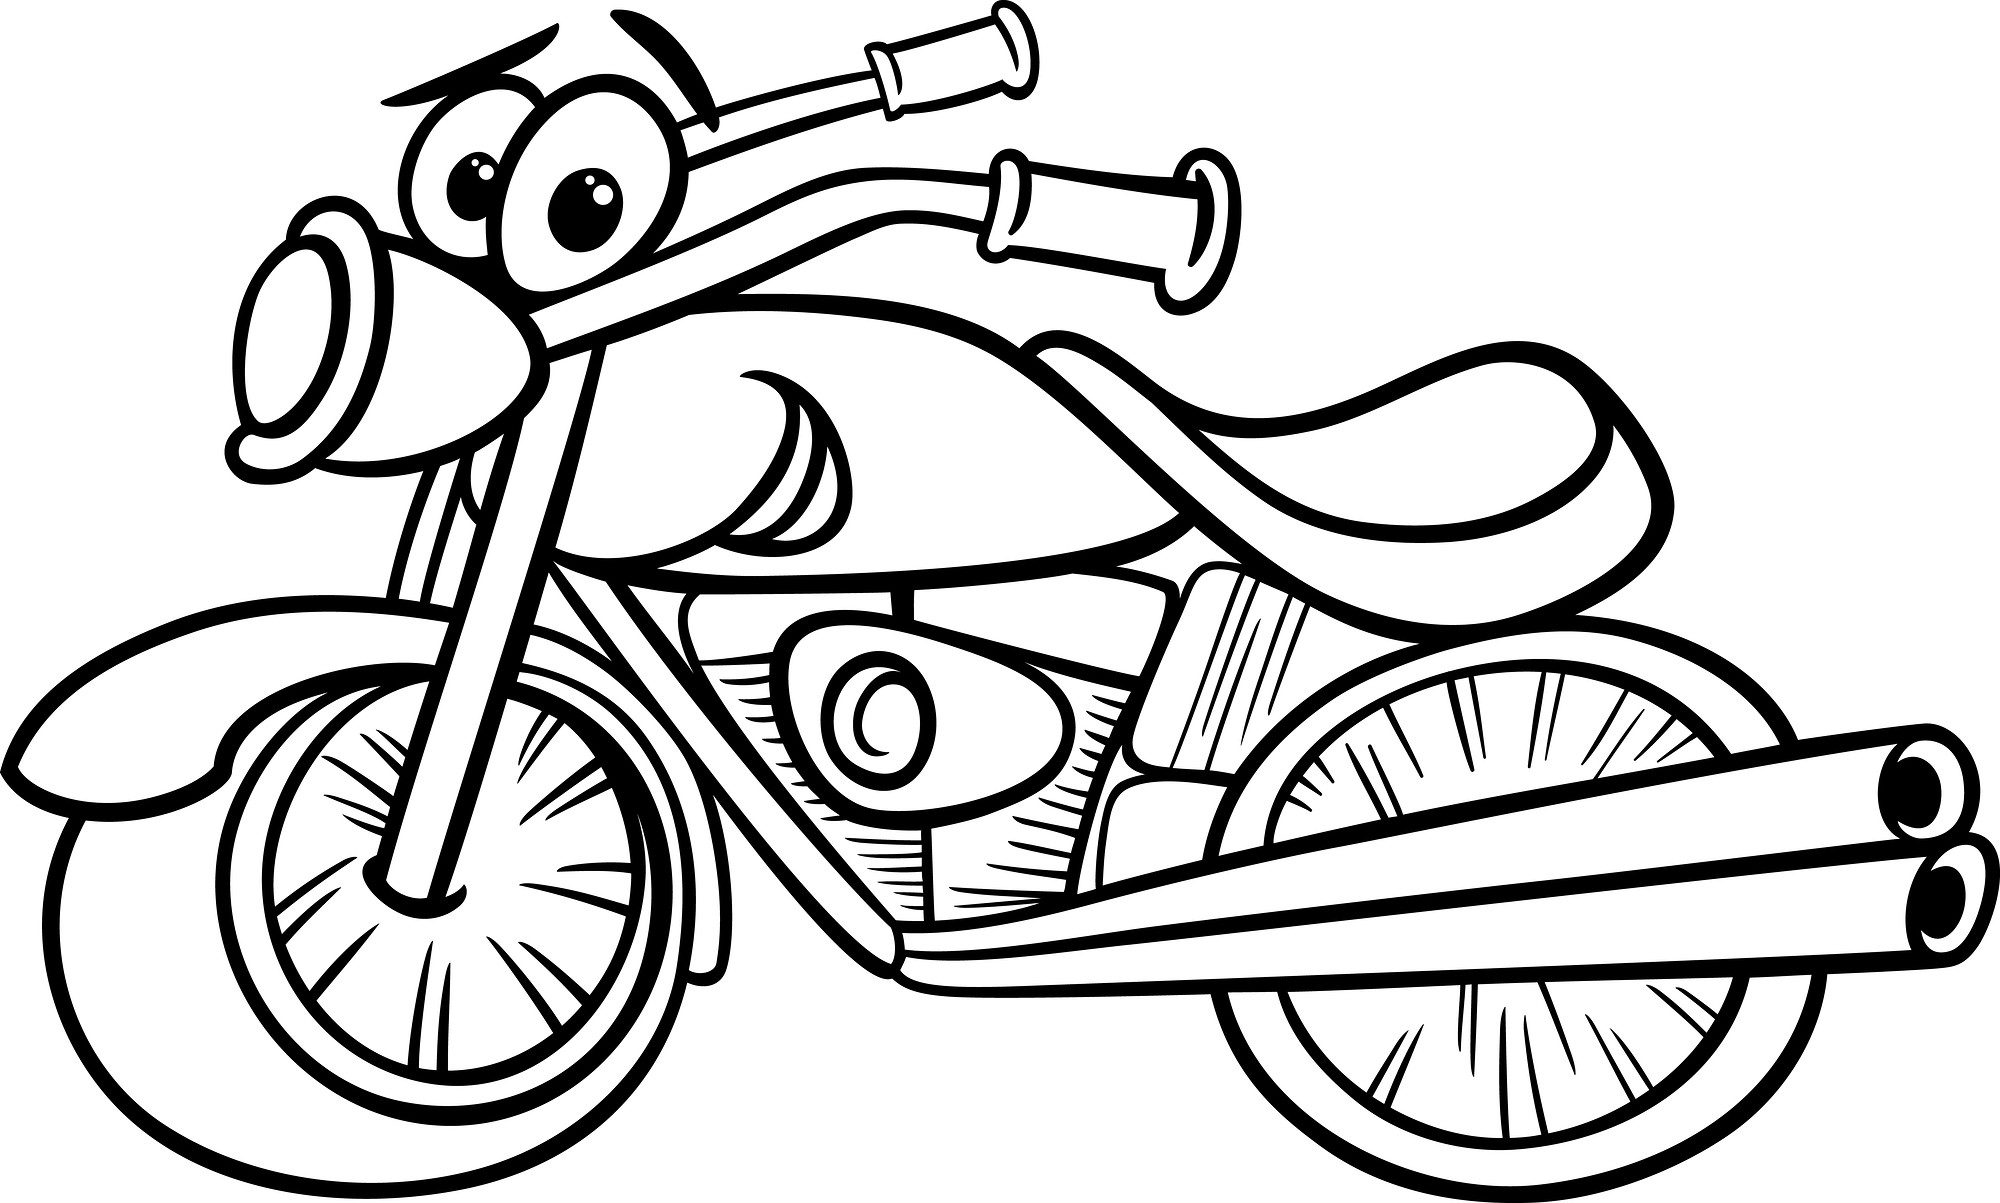 2000x1203 Motor Cycle Coloring Page Wagashiya